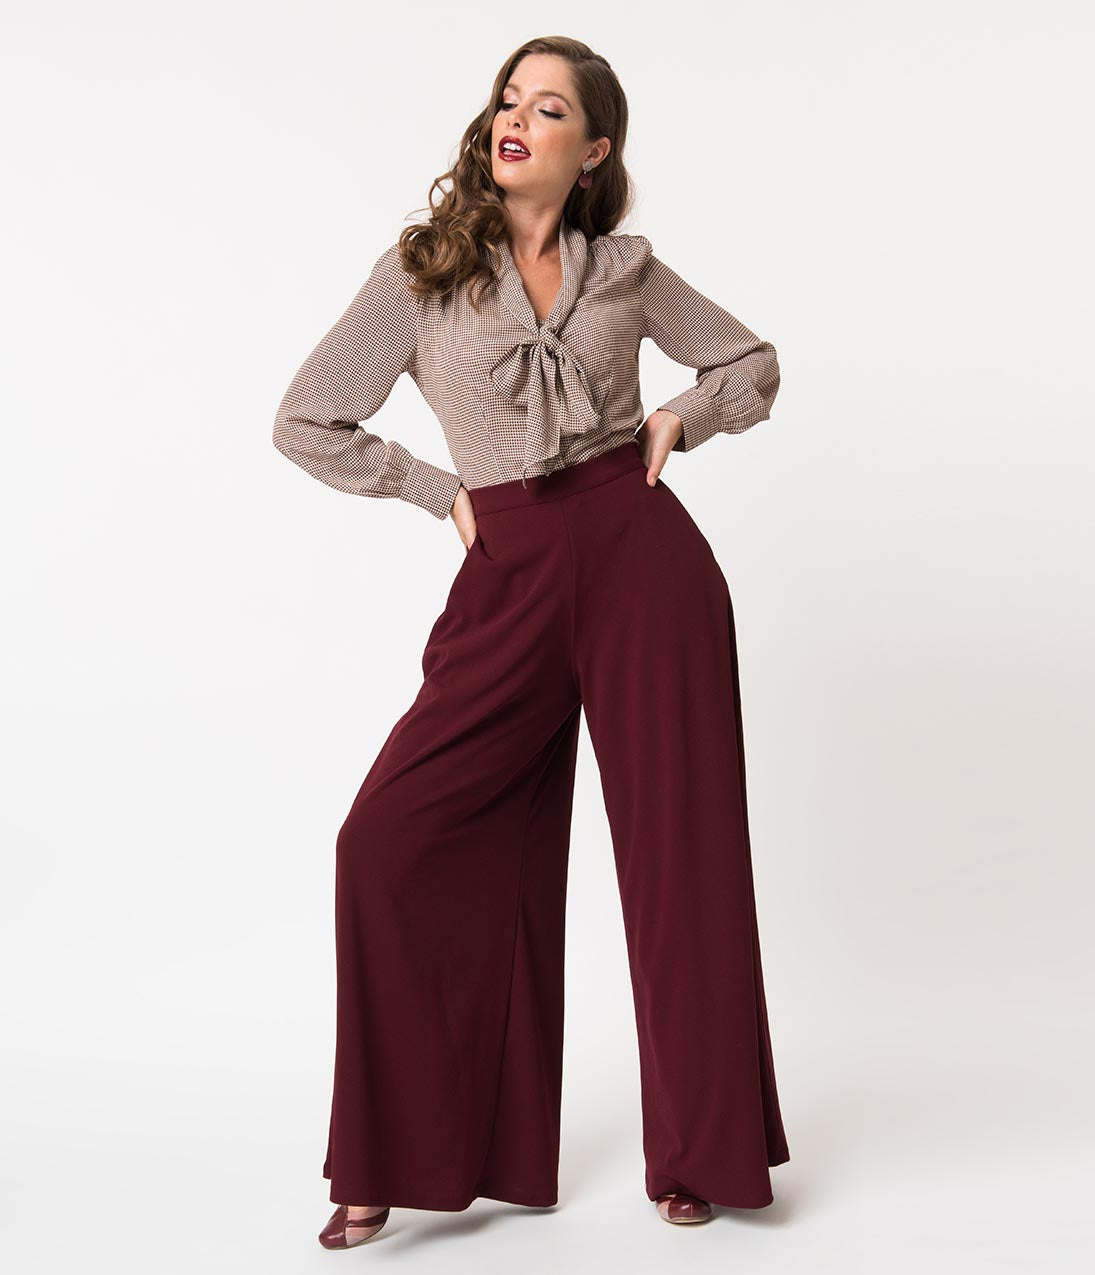 1950s Pants & Jeans- High Waist, Wide Leg, Capri, Pedal Pushers La Femme En Noir Oxblood Red Widow High Waisted Wide Leg Palazzo Pants $122.00 AT vintagedancer.com